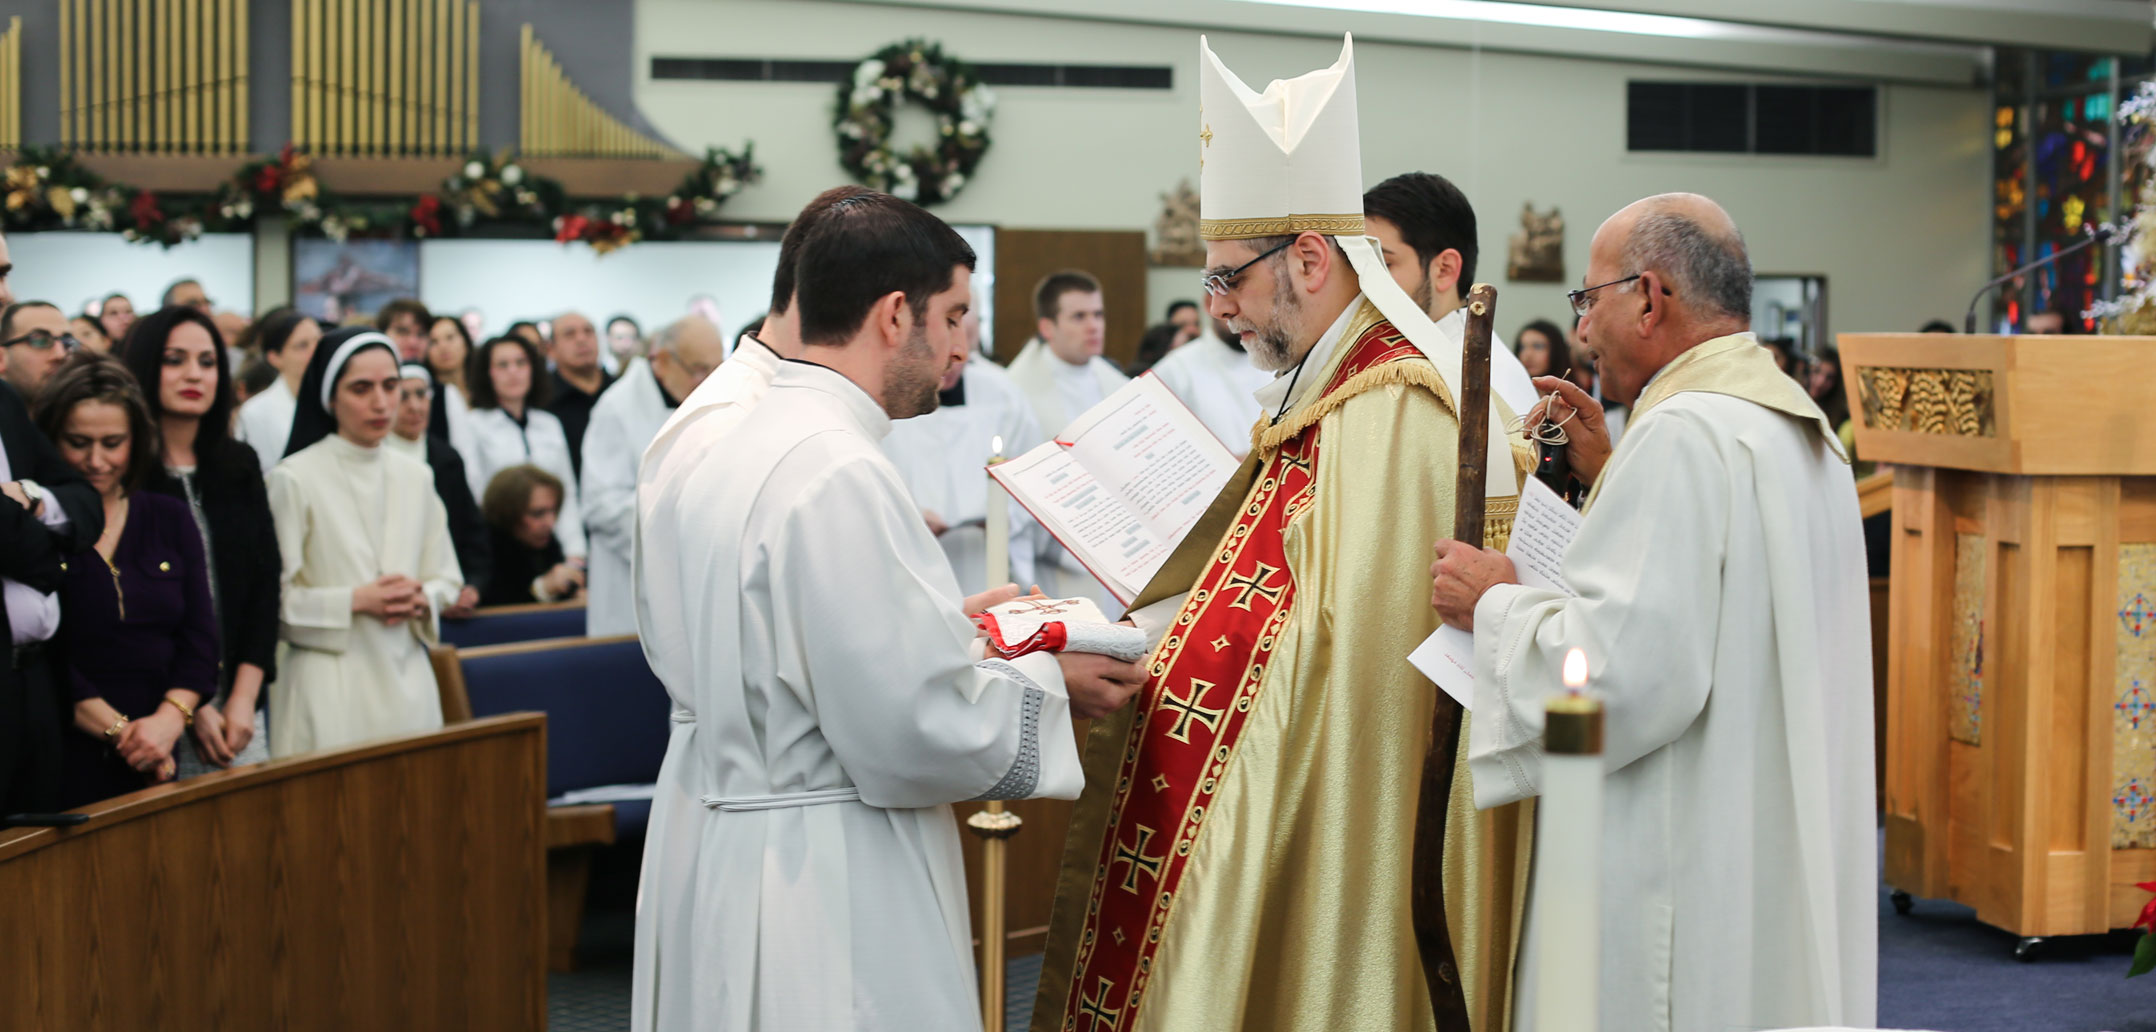 2016/12/Chaldean_Ordinations_December_2016-5.jpg